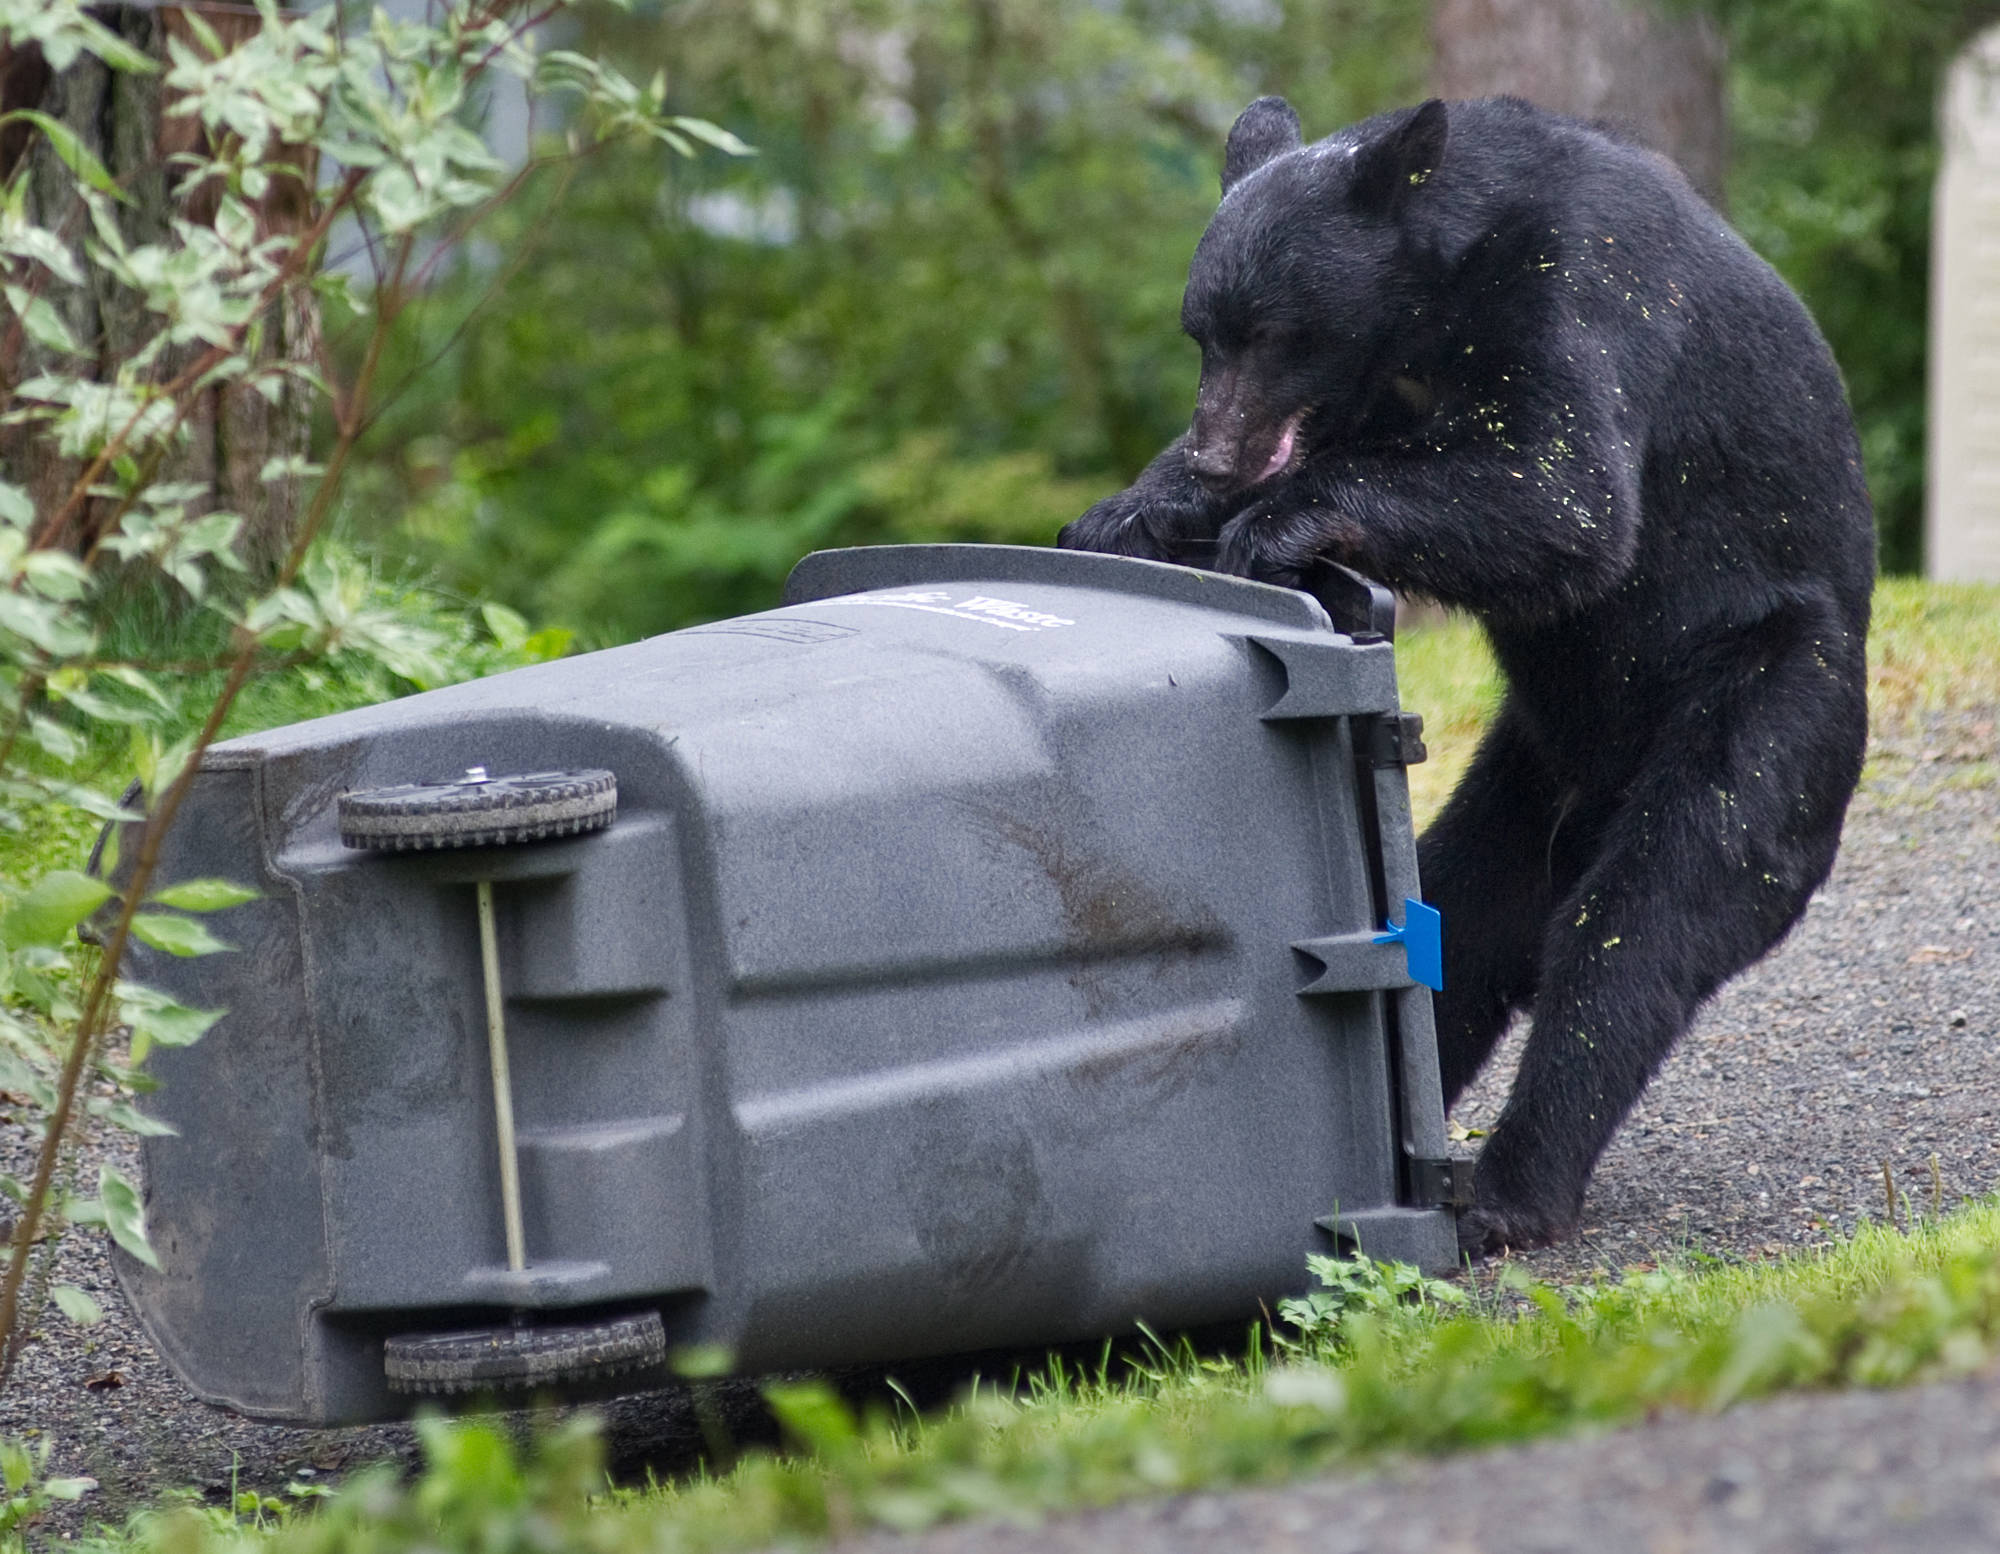 A black bear sow attempts to open a Pacific Waste garbage container in the Bonnie Brae subdivision on Douglas Island in July 2013. Water and wasted service won't be discontinued for Juneauites in light of the ongoing pandemic. (Michael Penn   Juneau Empire file)